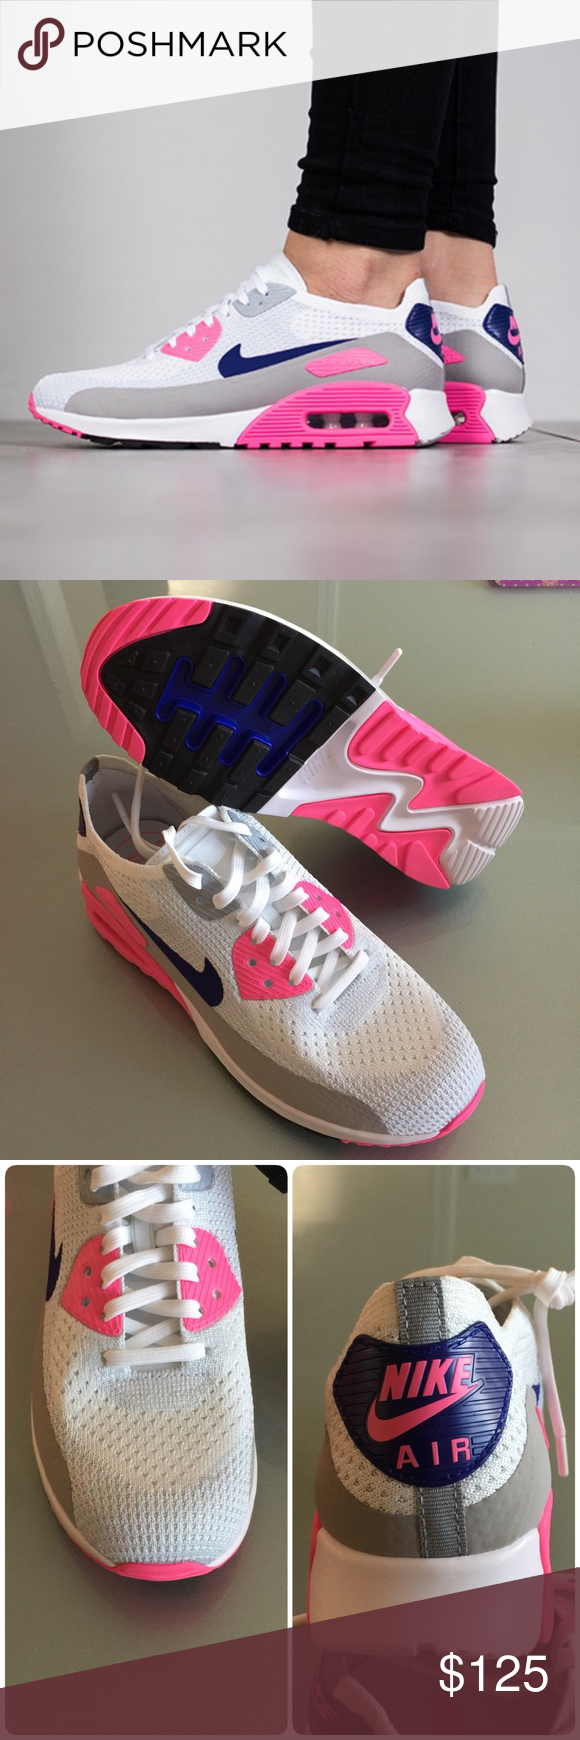 2ace98d60356 🎉🎈HP🎈🎉New NIKE Air Max 90 Ultra 2.0 Flyknit brand new no lid size 8.5  white concord laser pink black comes from smoke free home 100% authentic  M1700070 ...